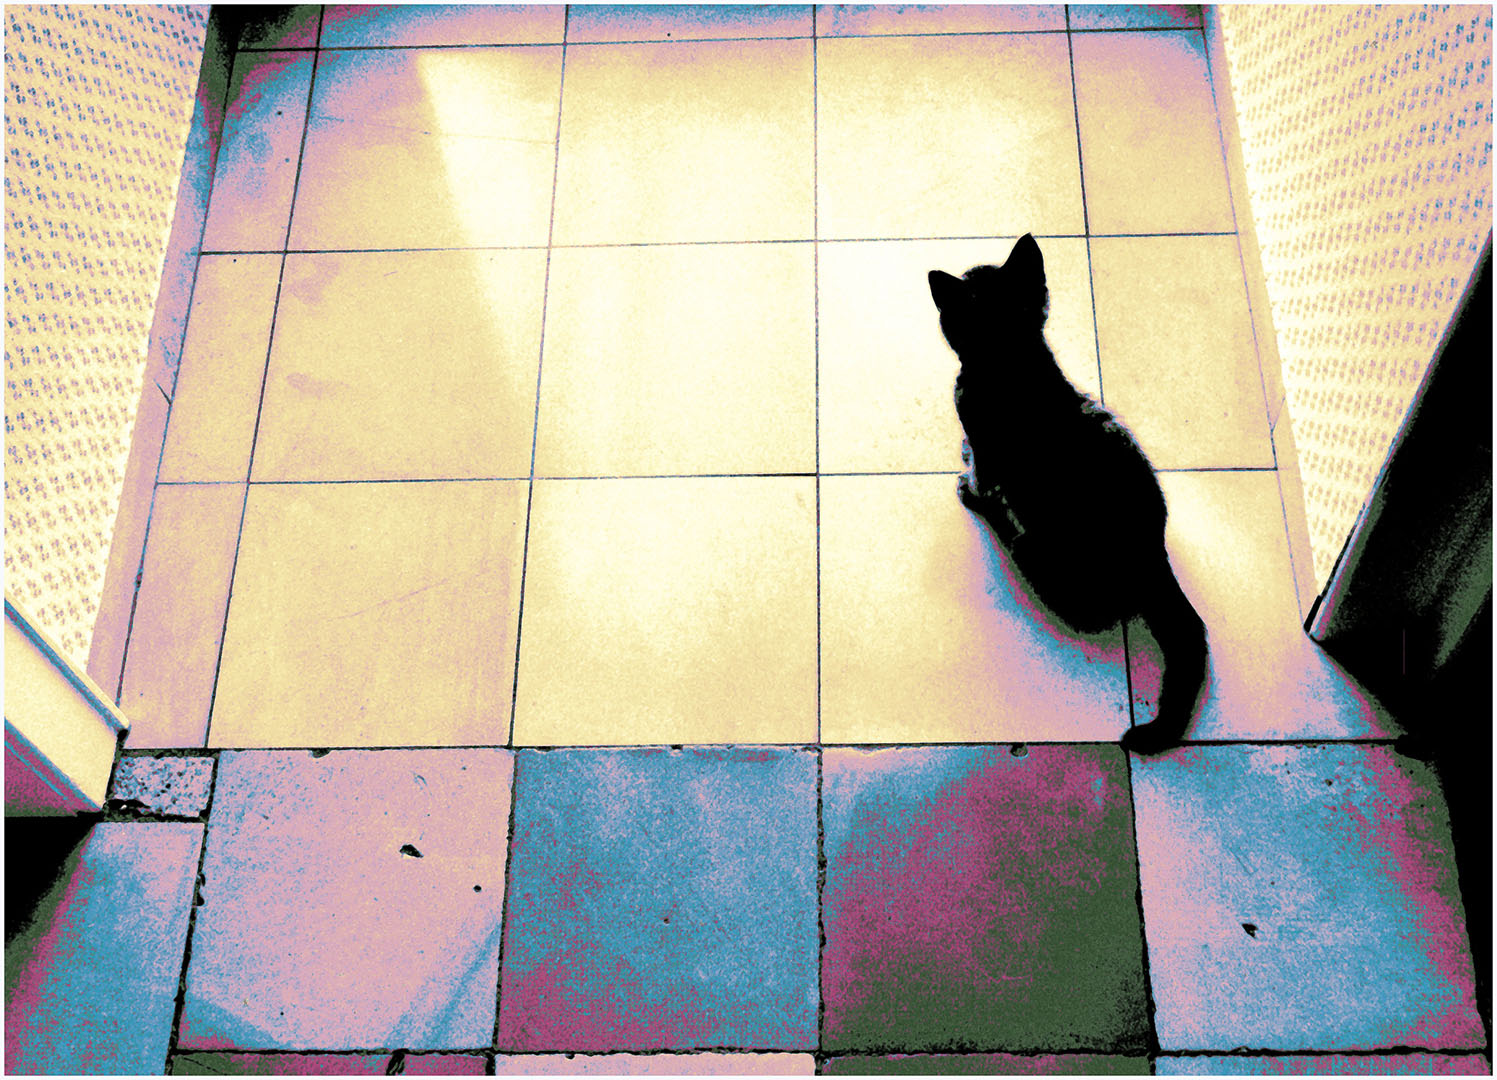 Cats_and_Dogs_011_Tiere49b